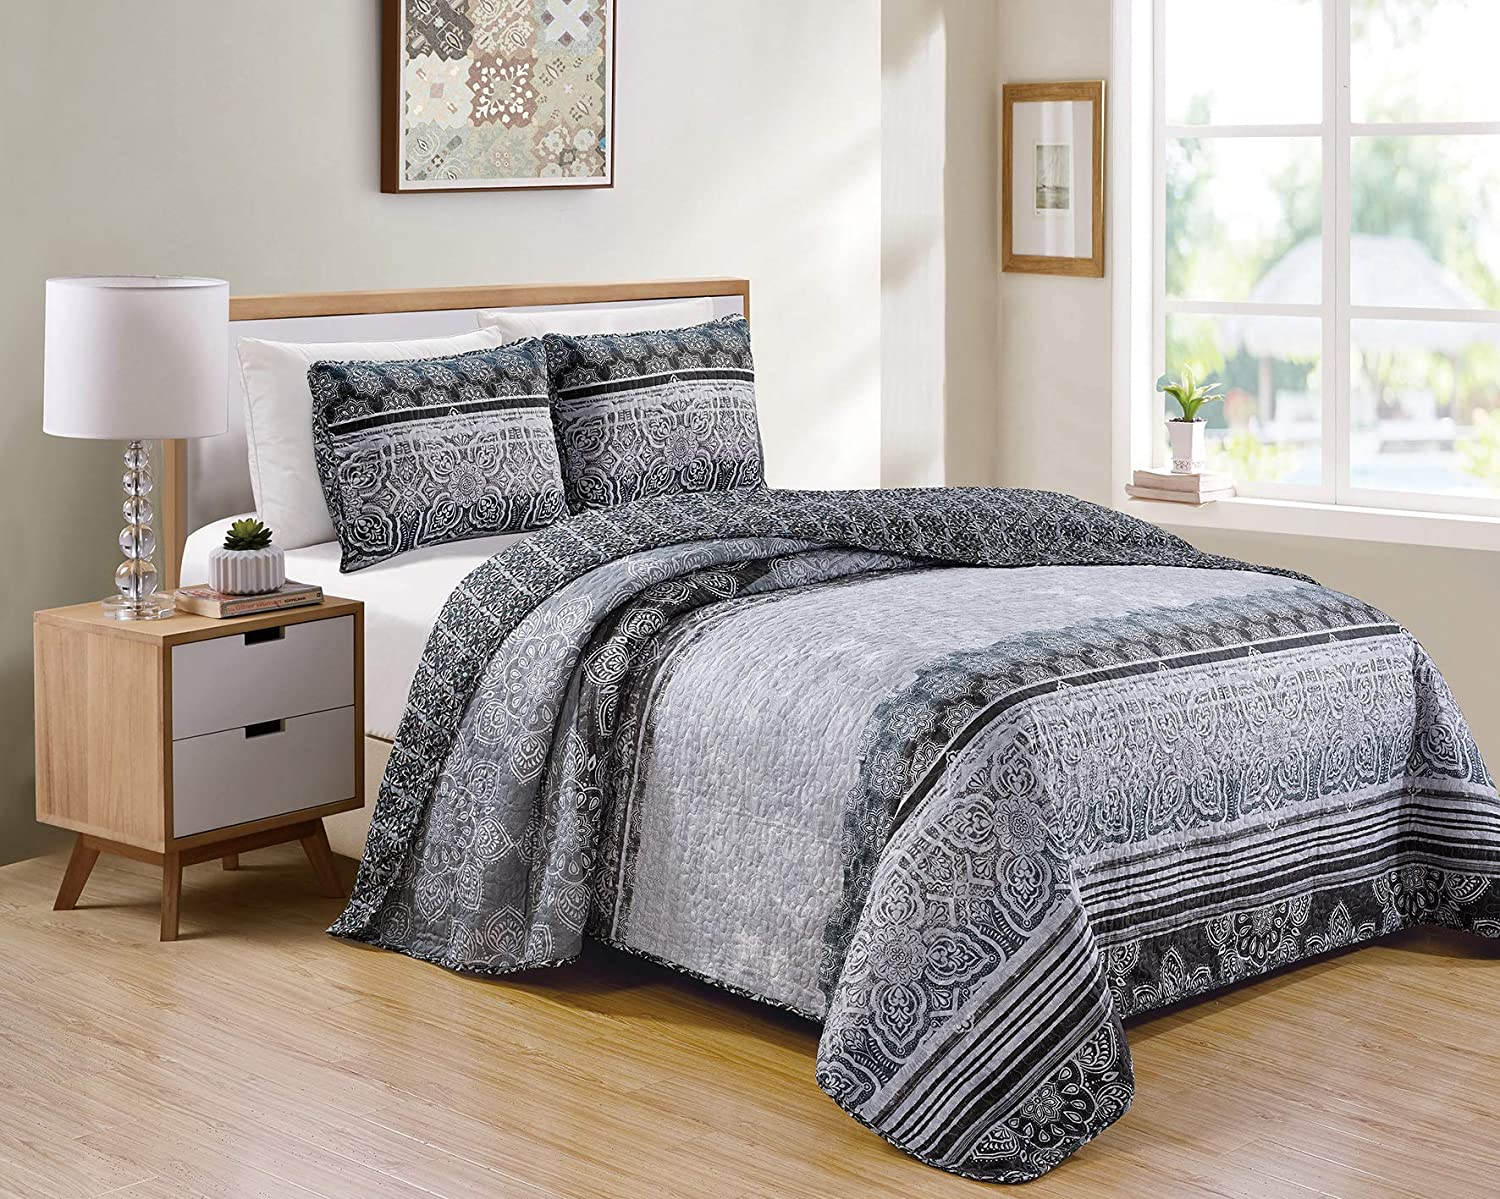 Better Home Style Modern Grey and Slate Ornamental Floral Motif Printed Design Reversible 3 Piece Quilt Coverlet Bedspread Quilt Bed Cover Set # 11391 (King/Cal-King)